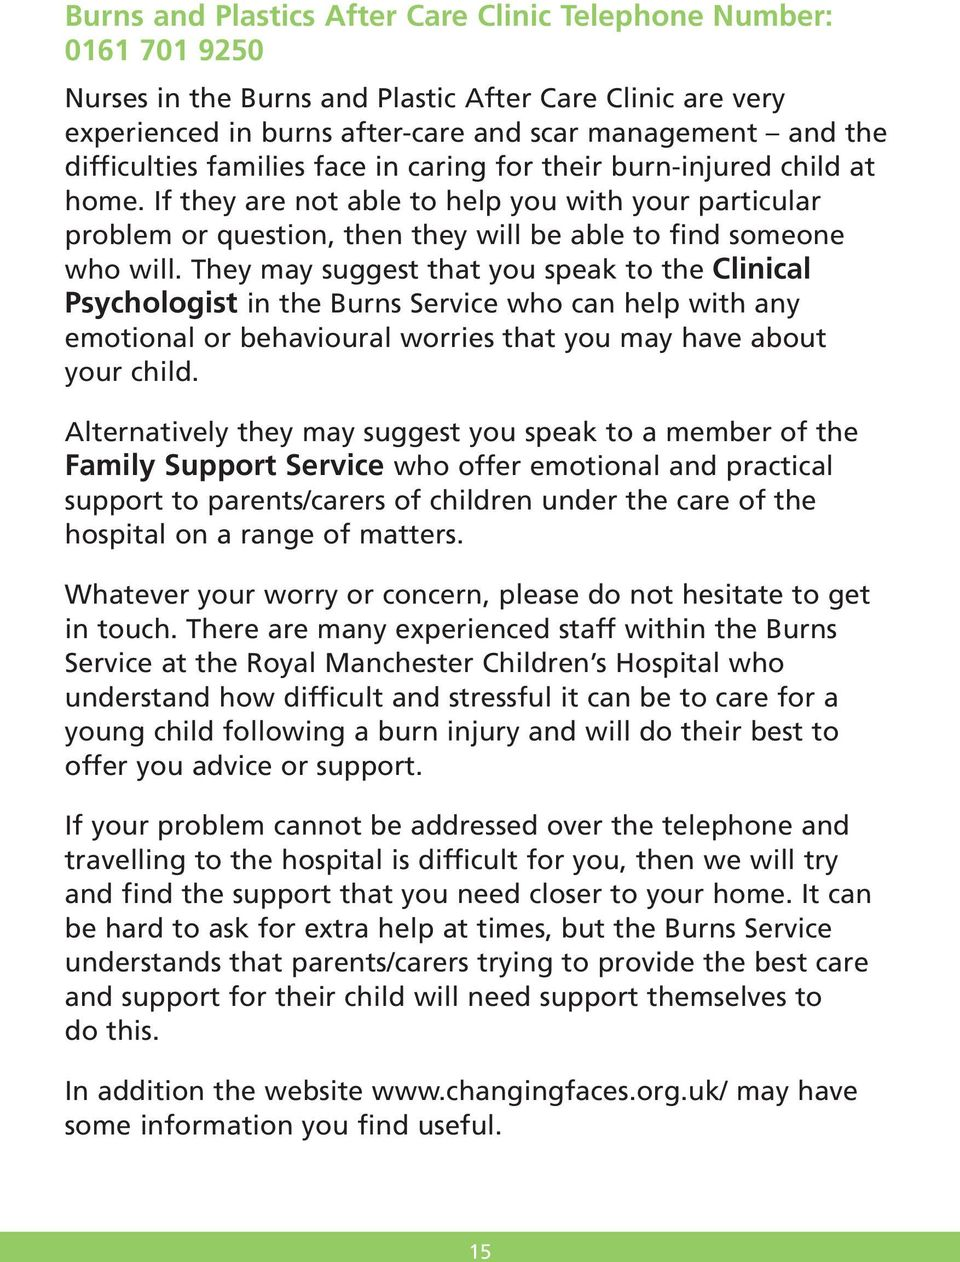 They may suggest that you speak to the Clinical Psychologist in the Burns Service who can help with any emotional or behavioural worries that you may have about your child.